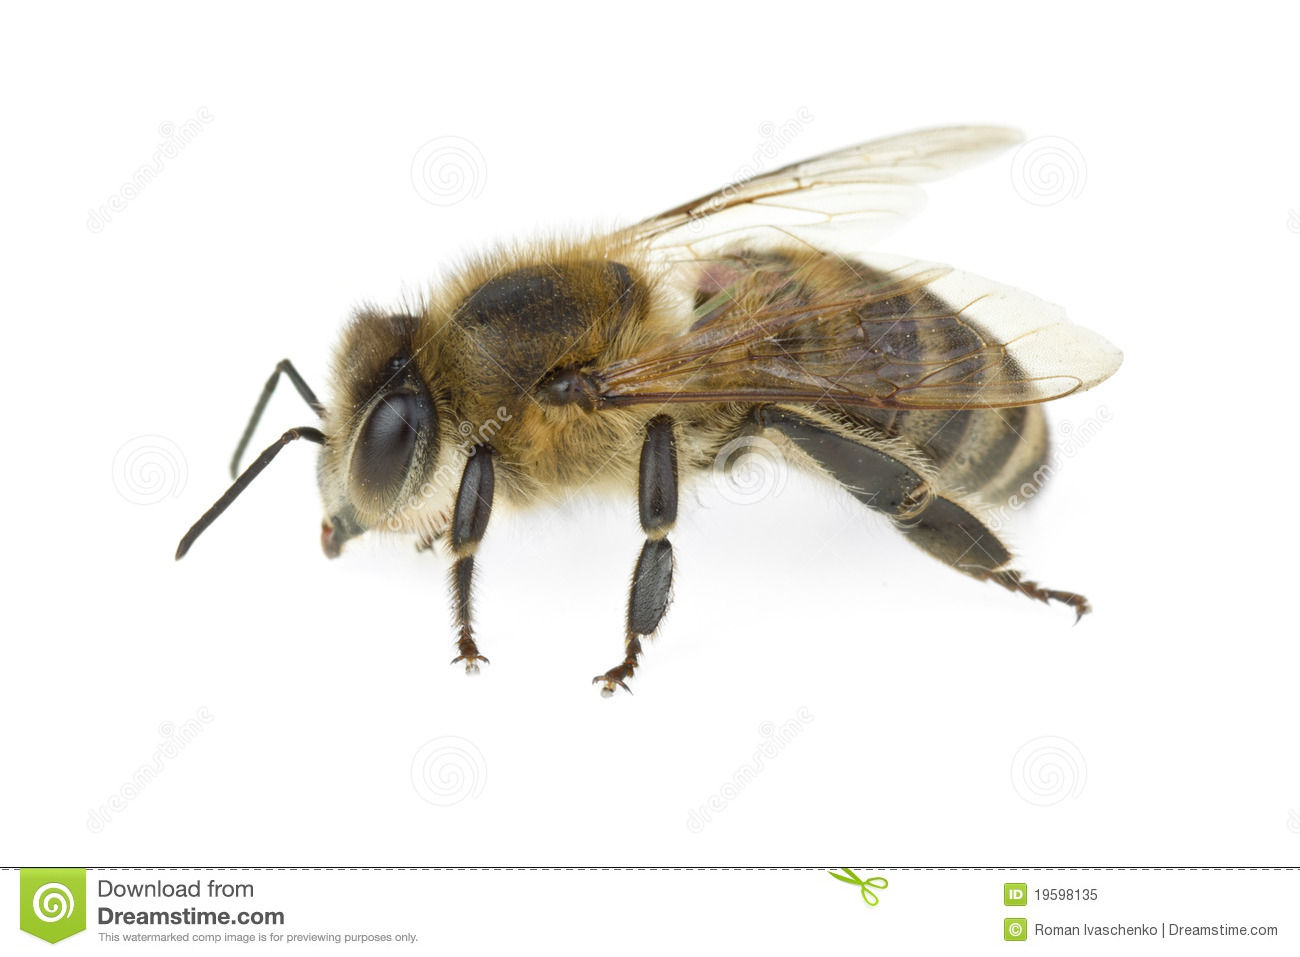 23+ Honey Bee Free Stock Images Wallpapers